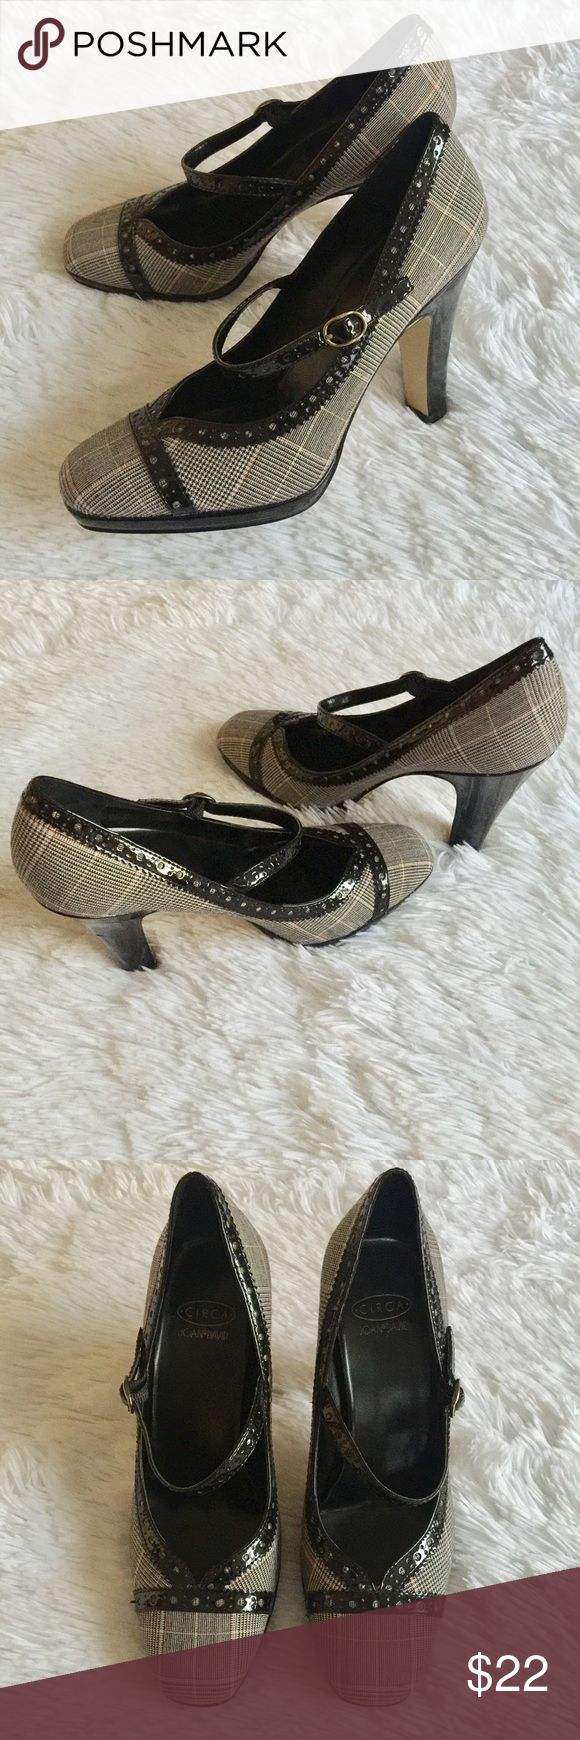 "Circa Joan & David Heels These are cute as a button / Excellent Condition / Fabric Upper / Black & Creme w/ red & gold thread tweed / 4"" Heel Joan & David Shoes Heels"